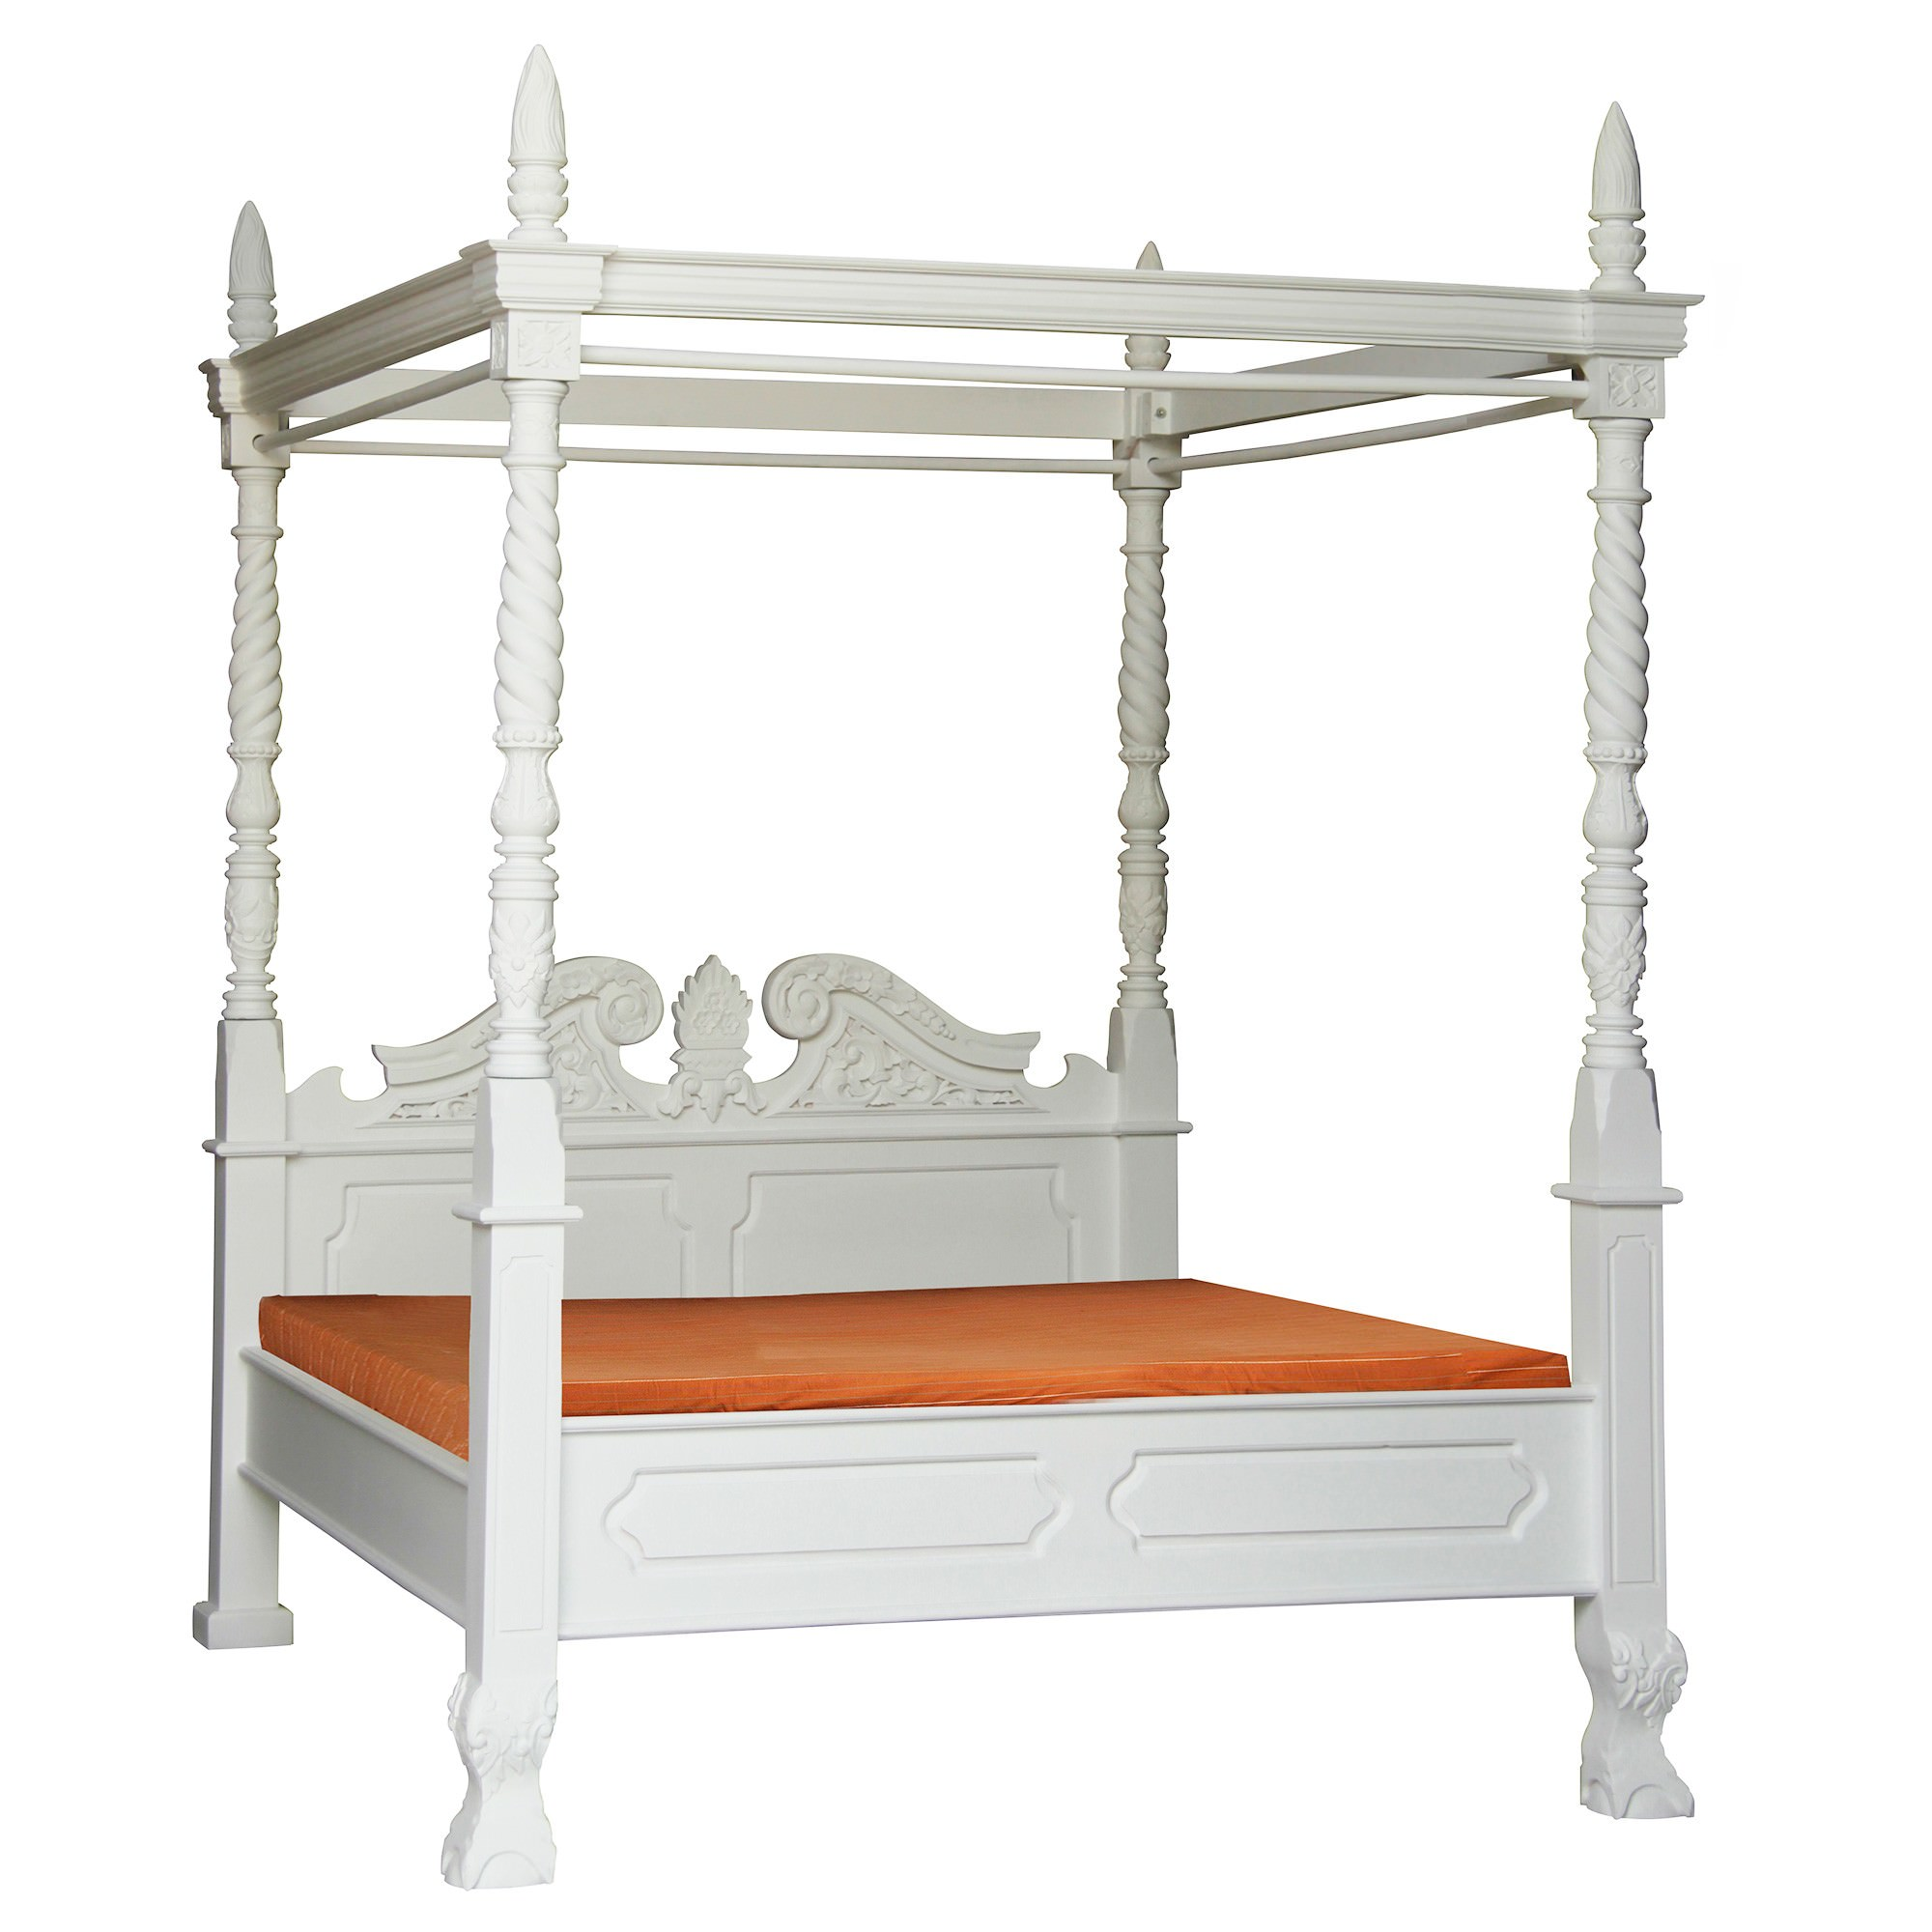 Jepara Mahogany Timber 4 Poster Bed, Queen, White